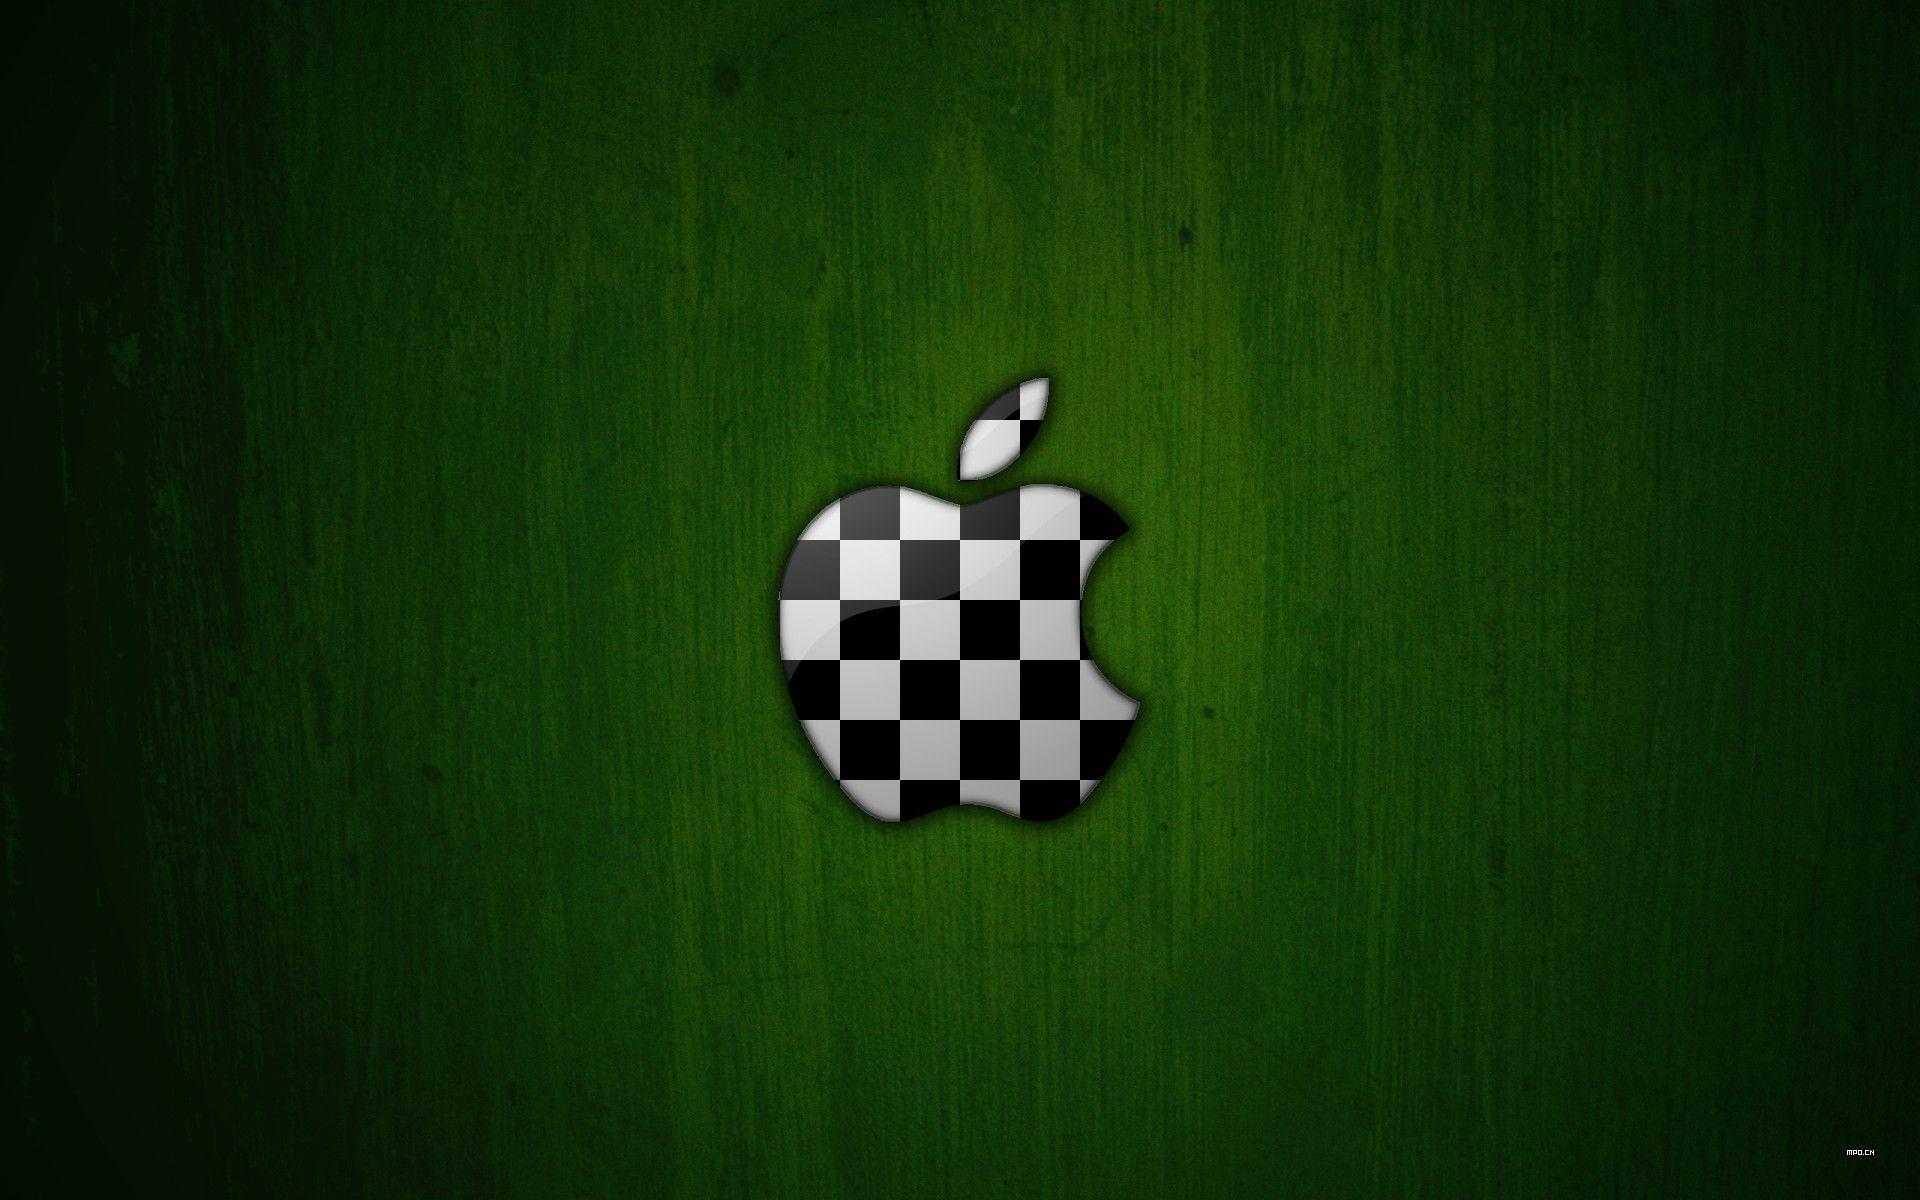 Apple Logo Wallpapers - Full HD wallpaper search - page 3